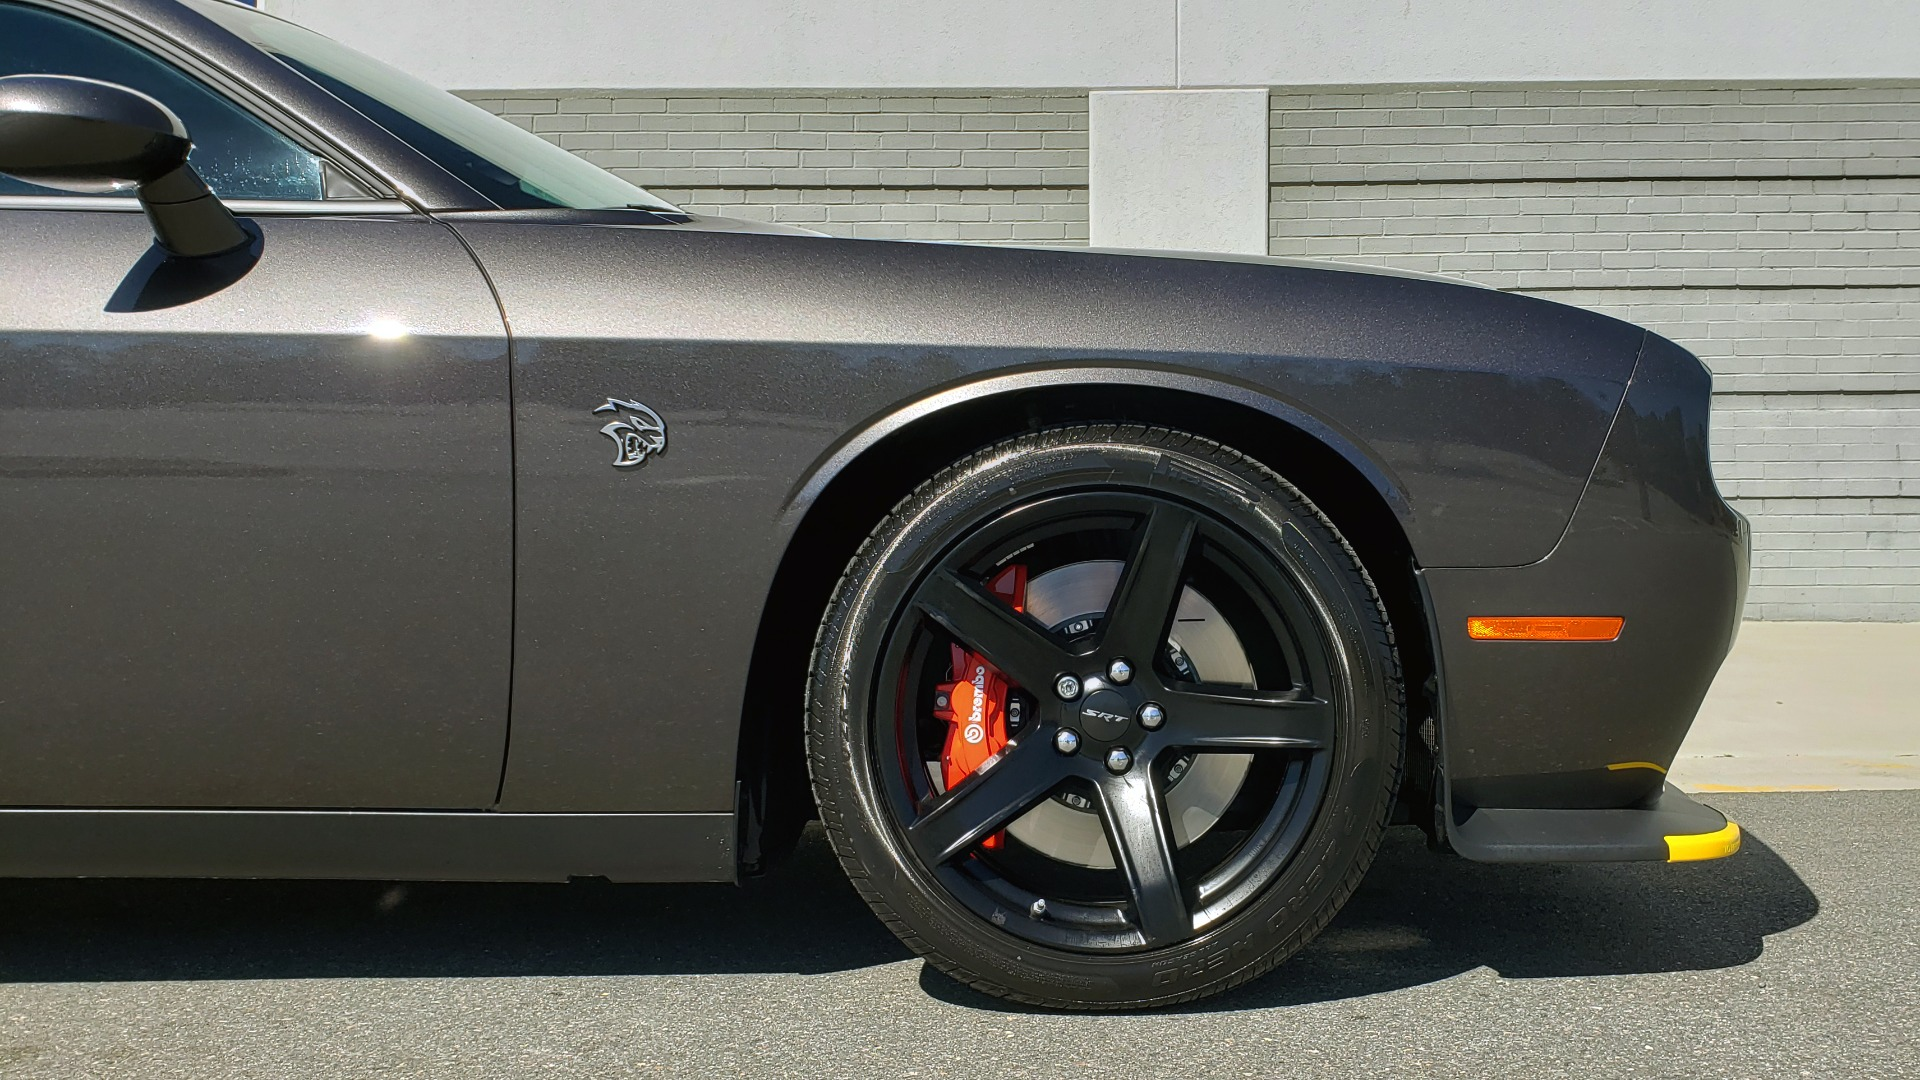 Used 2020 Dodge CHALLENGER SRT HELLCAT (717HP) / NAV / AUTO / CLOTH / REARVIEW / LOW MILES for sale Sold at Formula Imports in Charlotte NC 28227 80